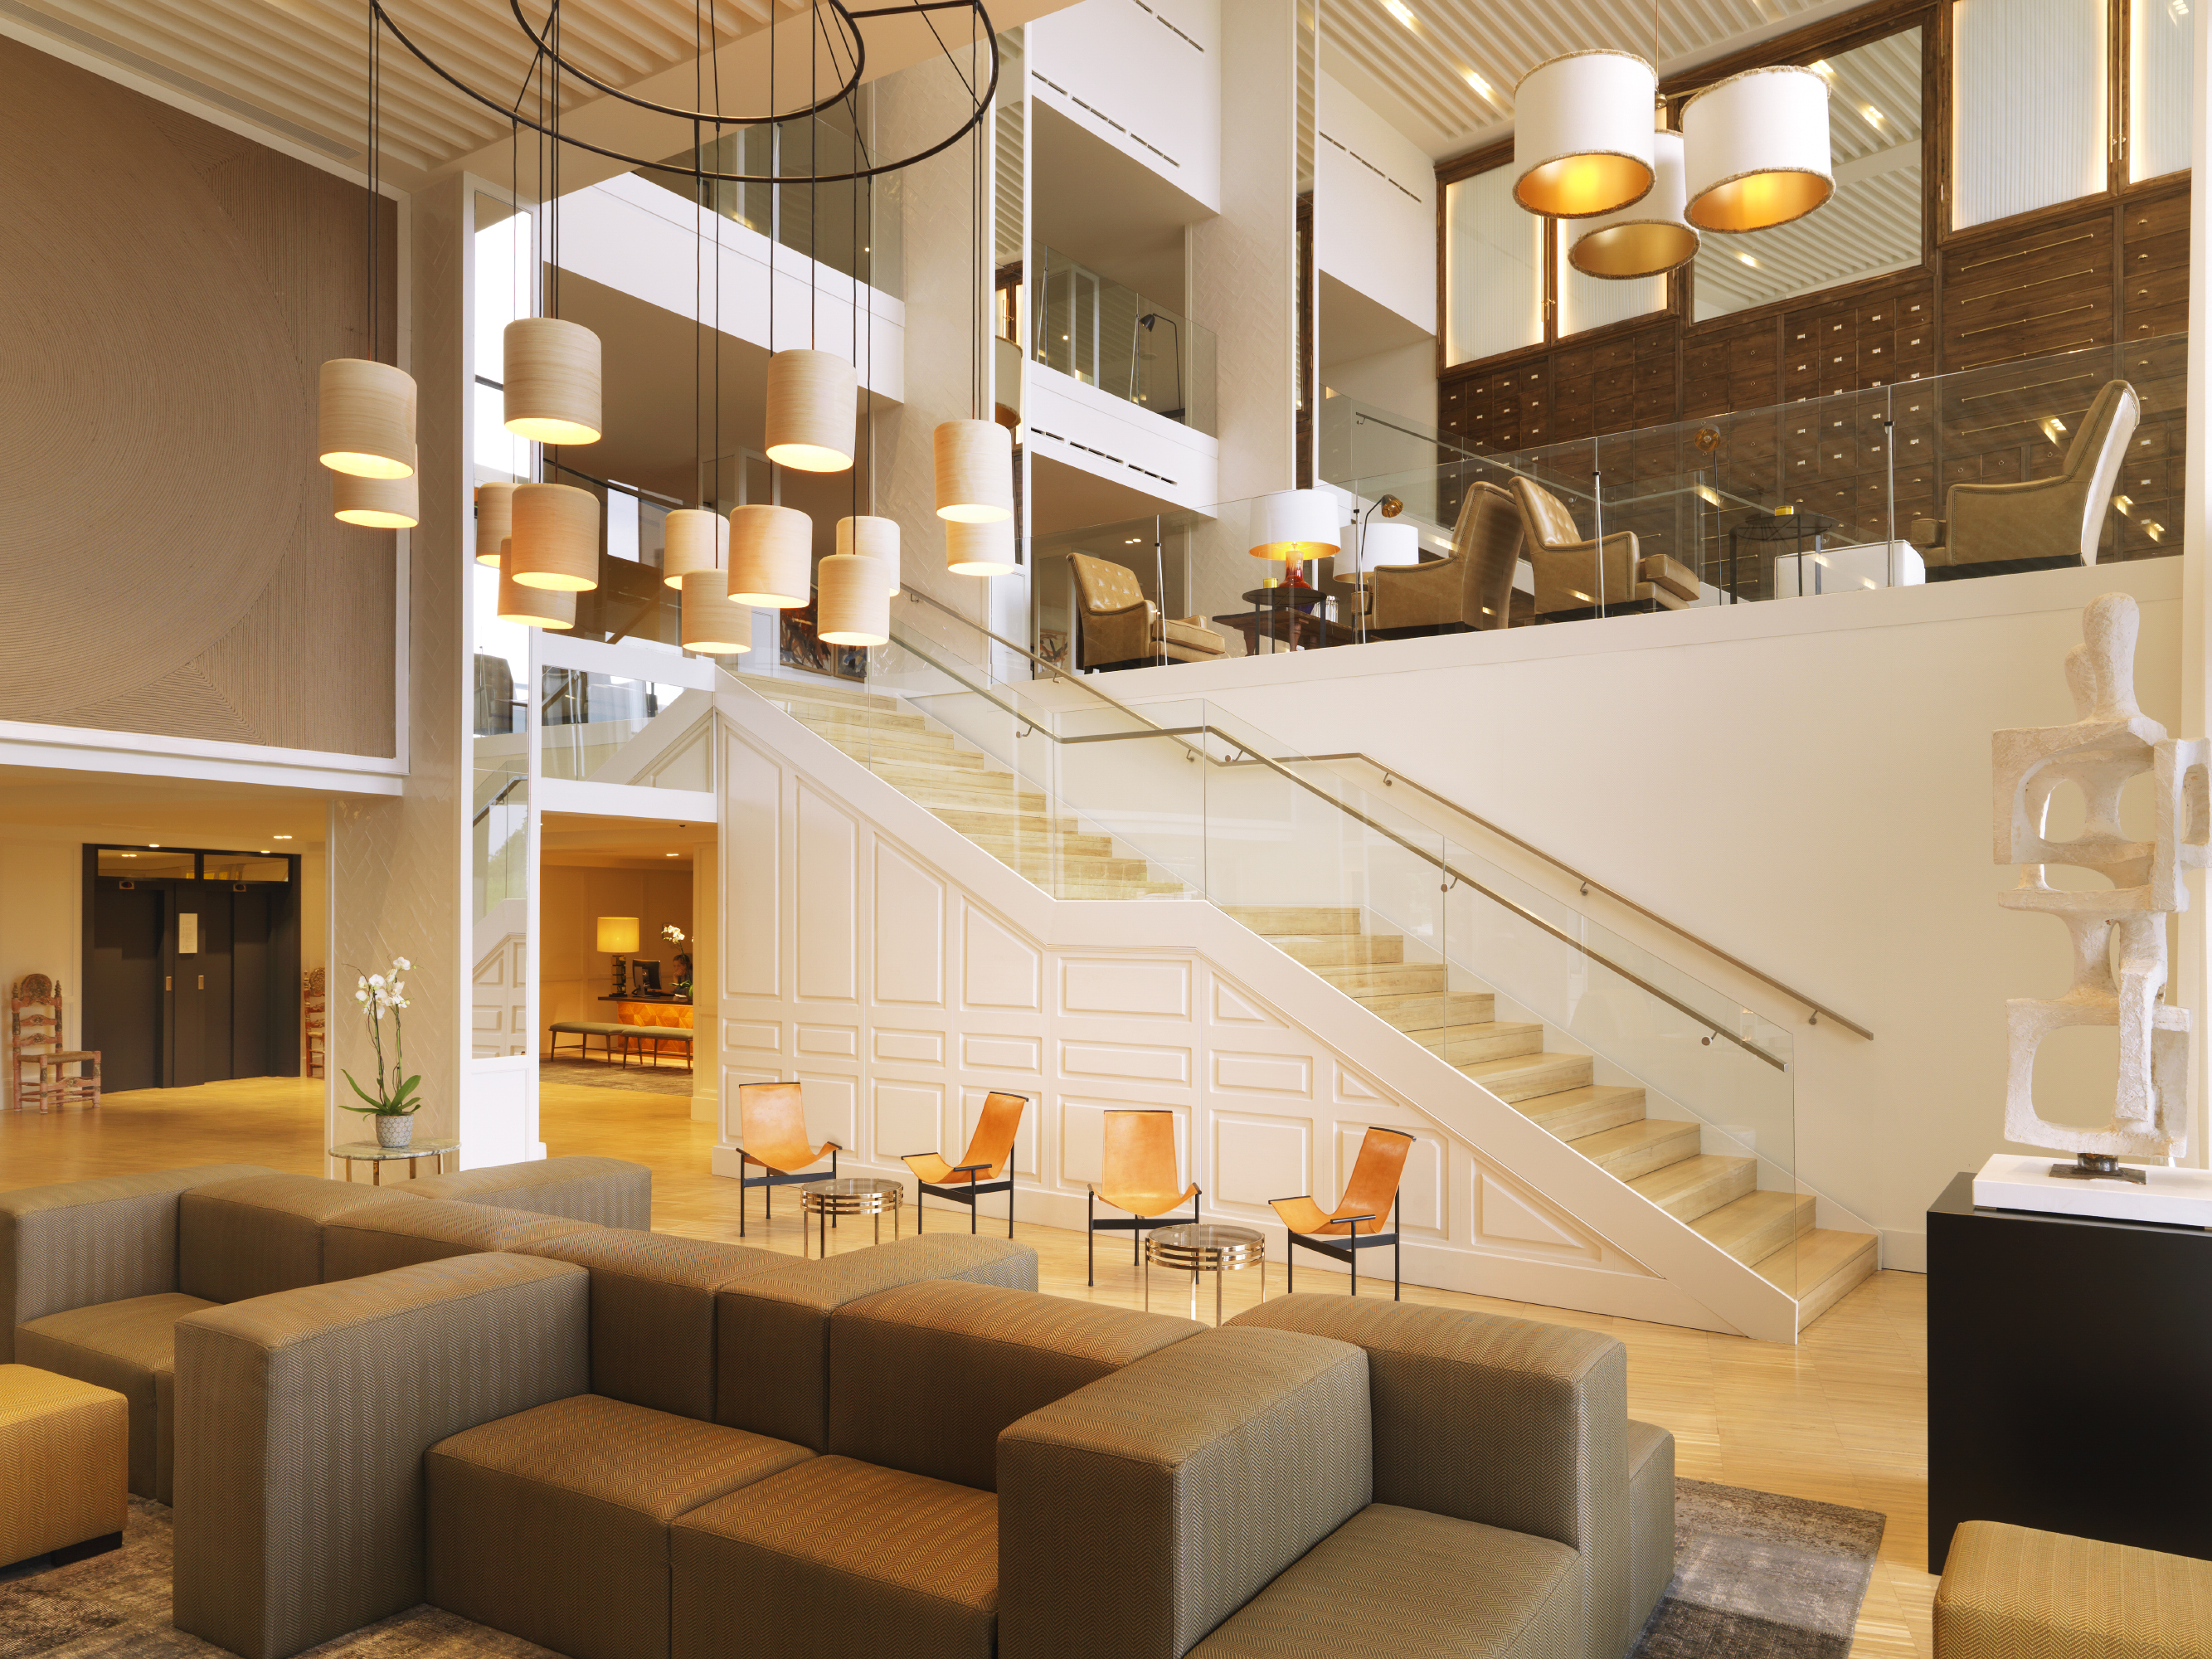 When we decided to renovate the on site hotel to open the new hotel camiral in 2016 we knew we needed a designer who could take on the challenges of the